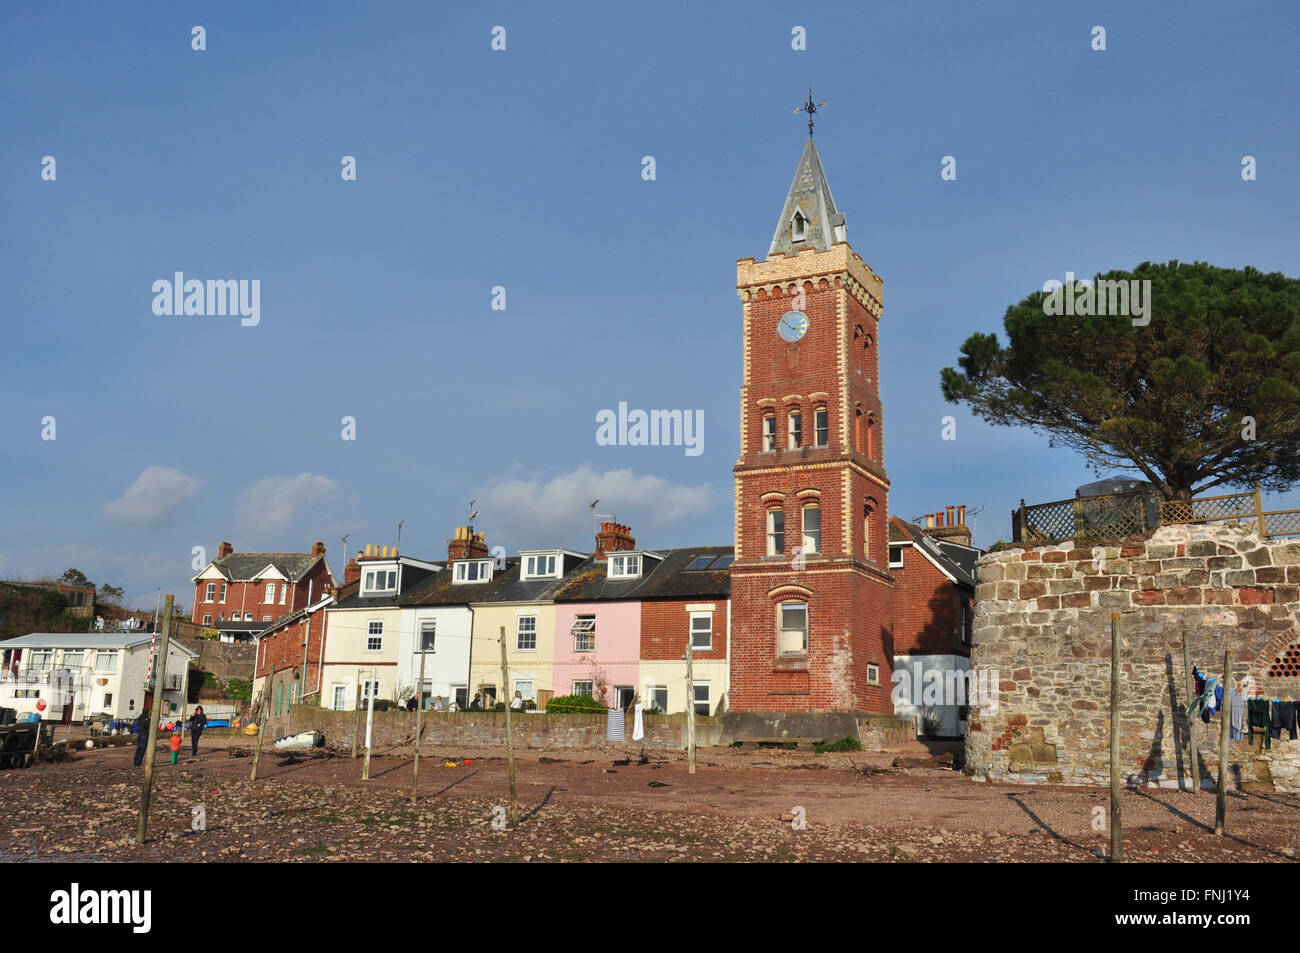 Sea Front Cottages and Peters Tower, Lympstone, Devon, England, UK - Stock Image